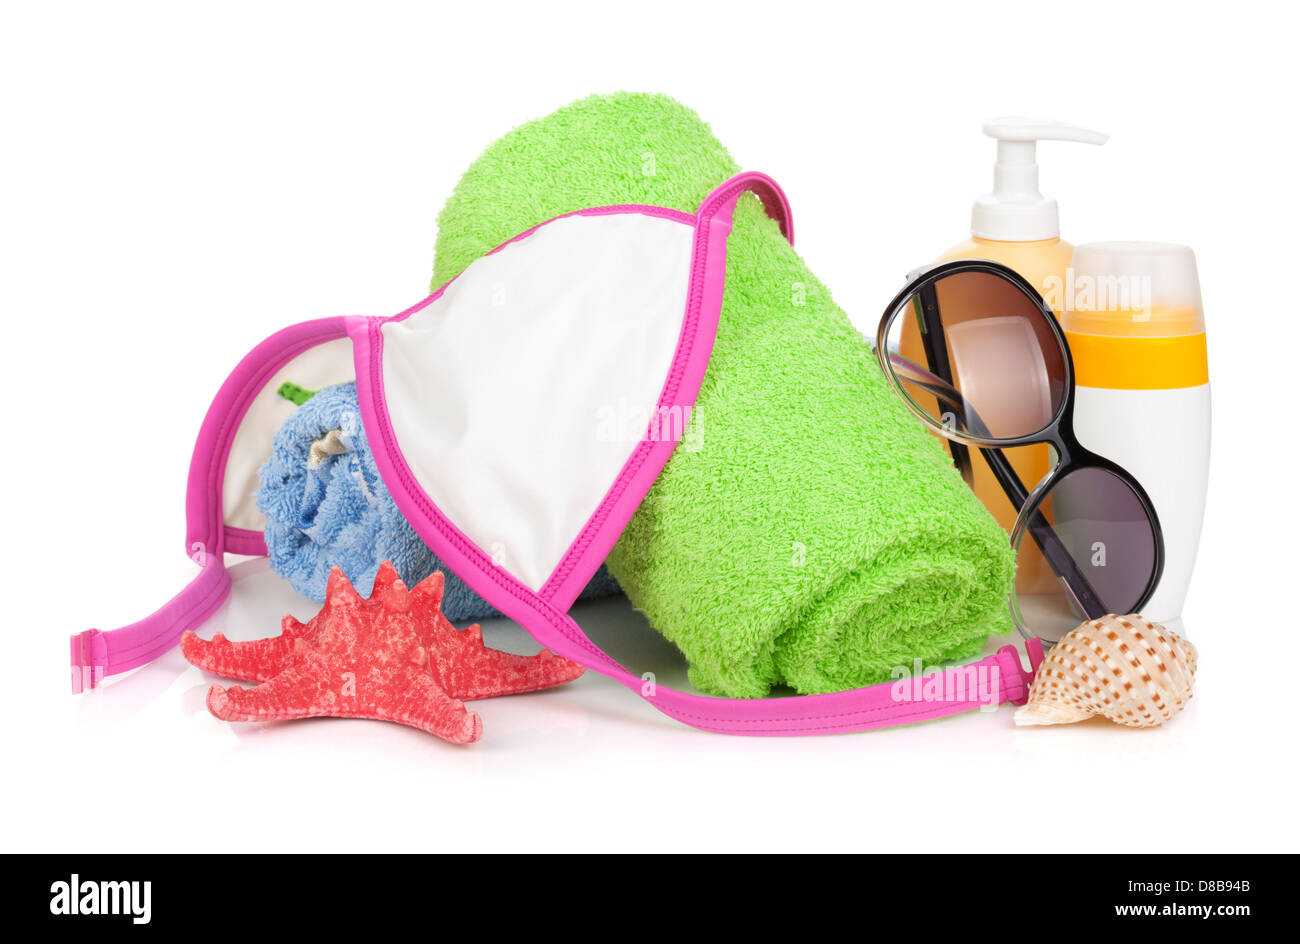 Swimming suit and beach items. Isolated on white background - Stock Image